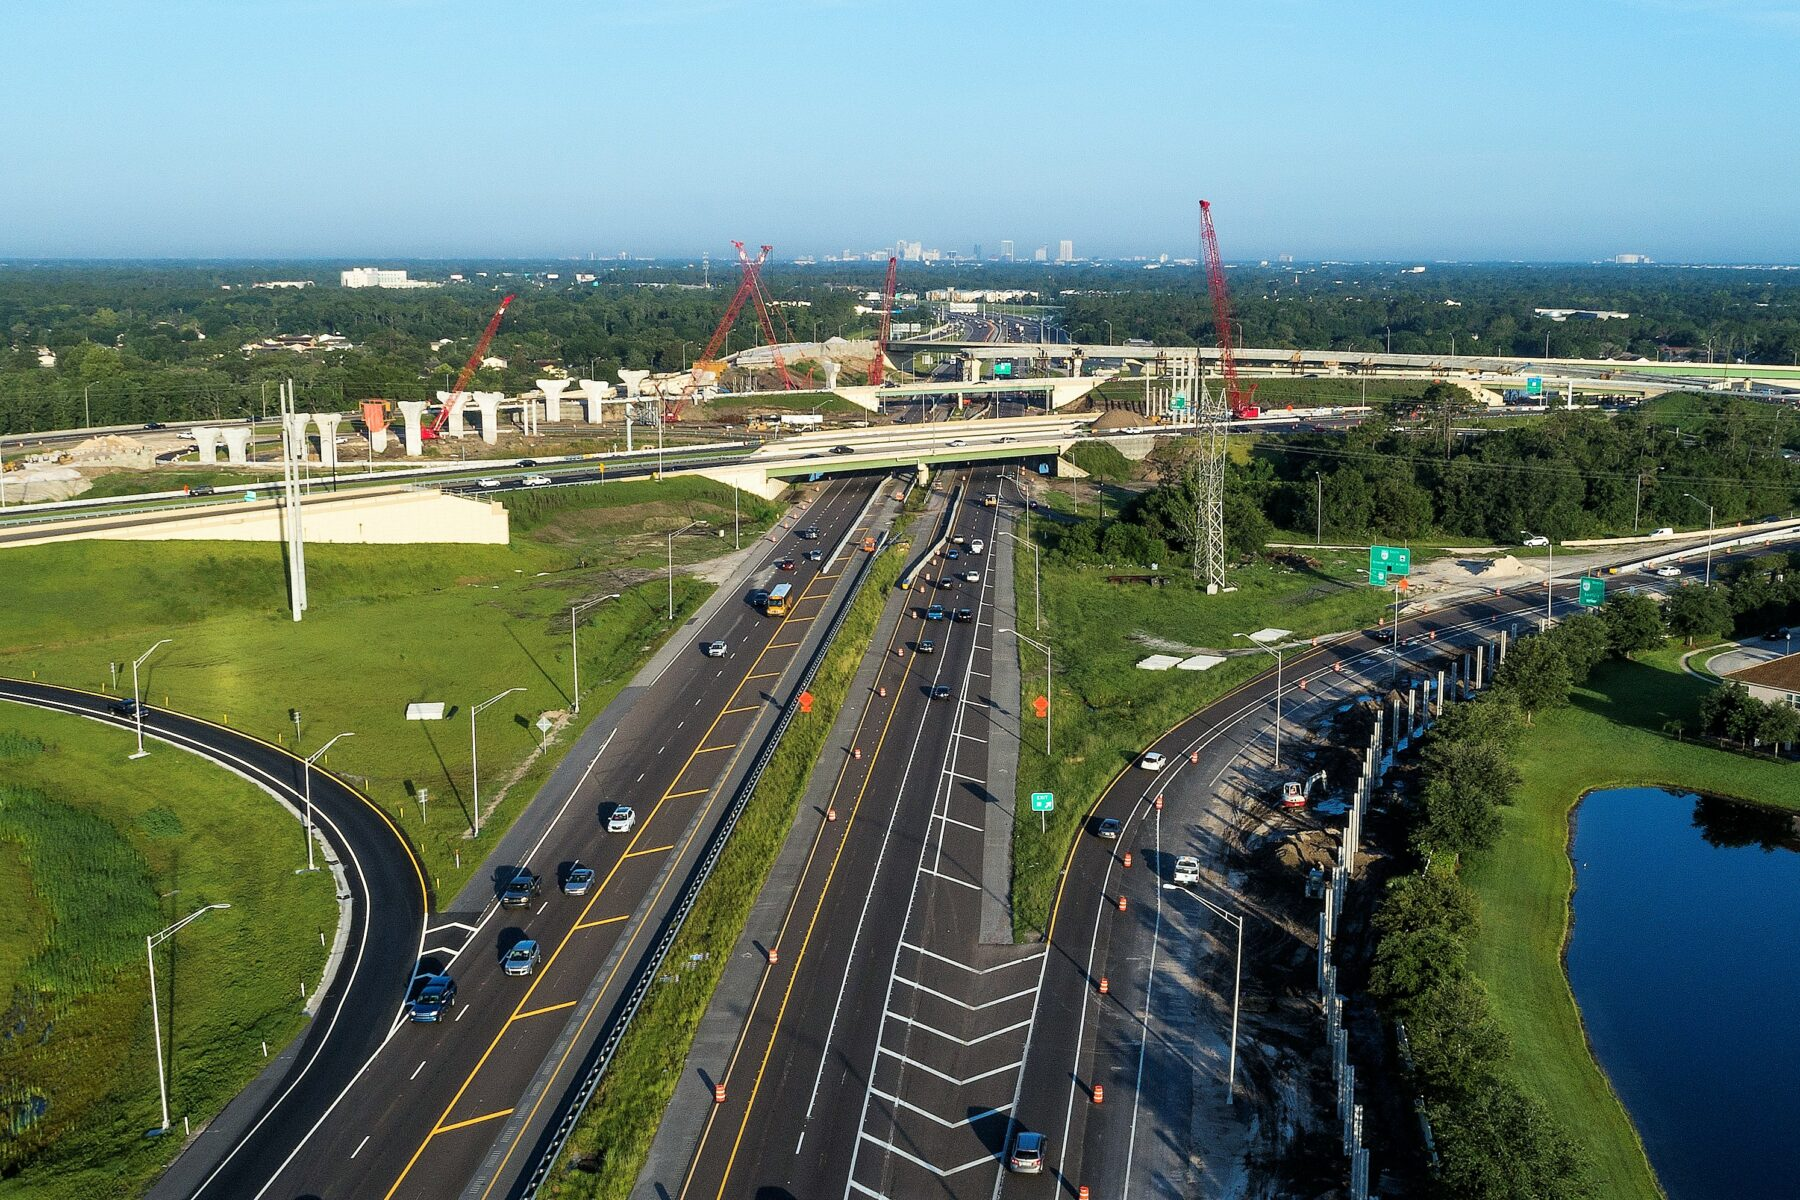 ariel view of State Road 417/State Road 408 Interchange